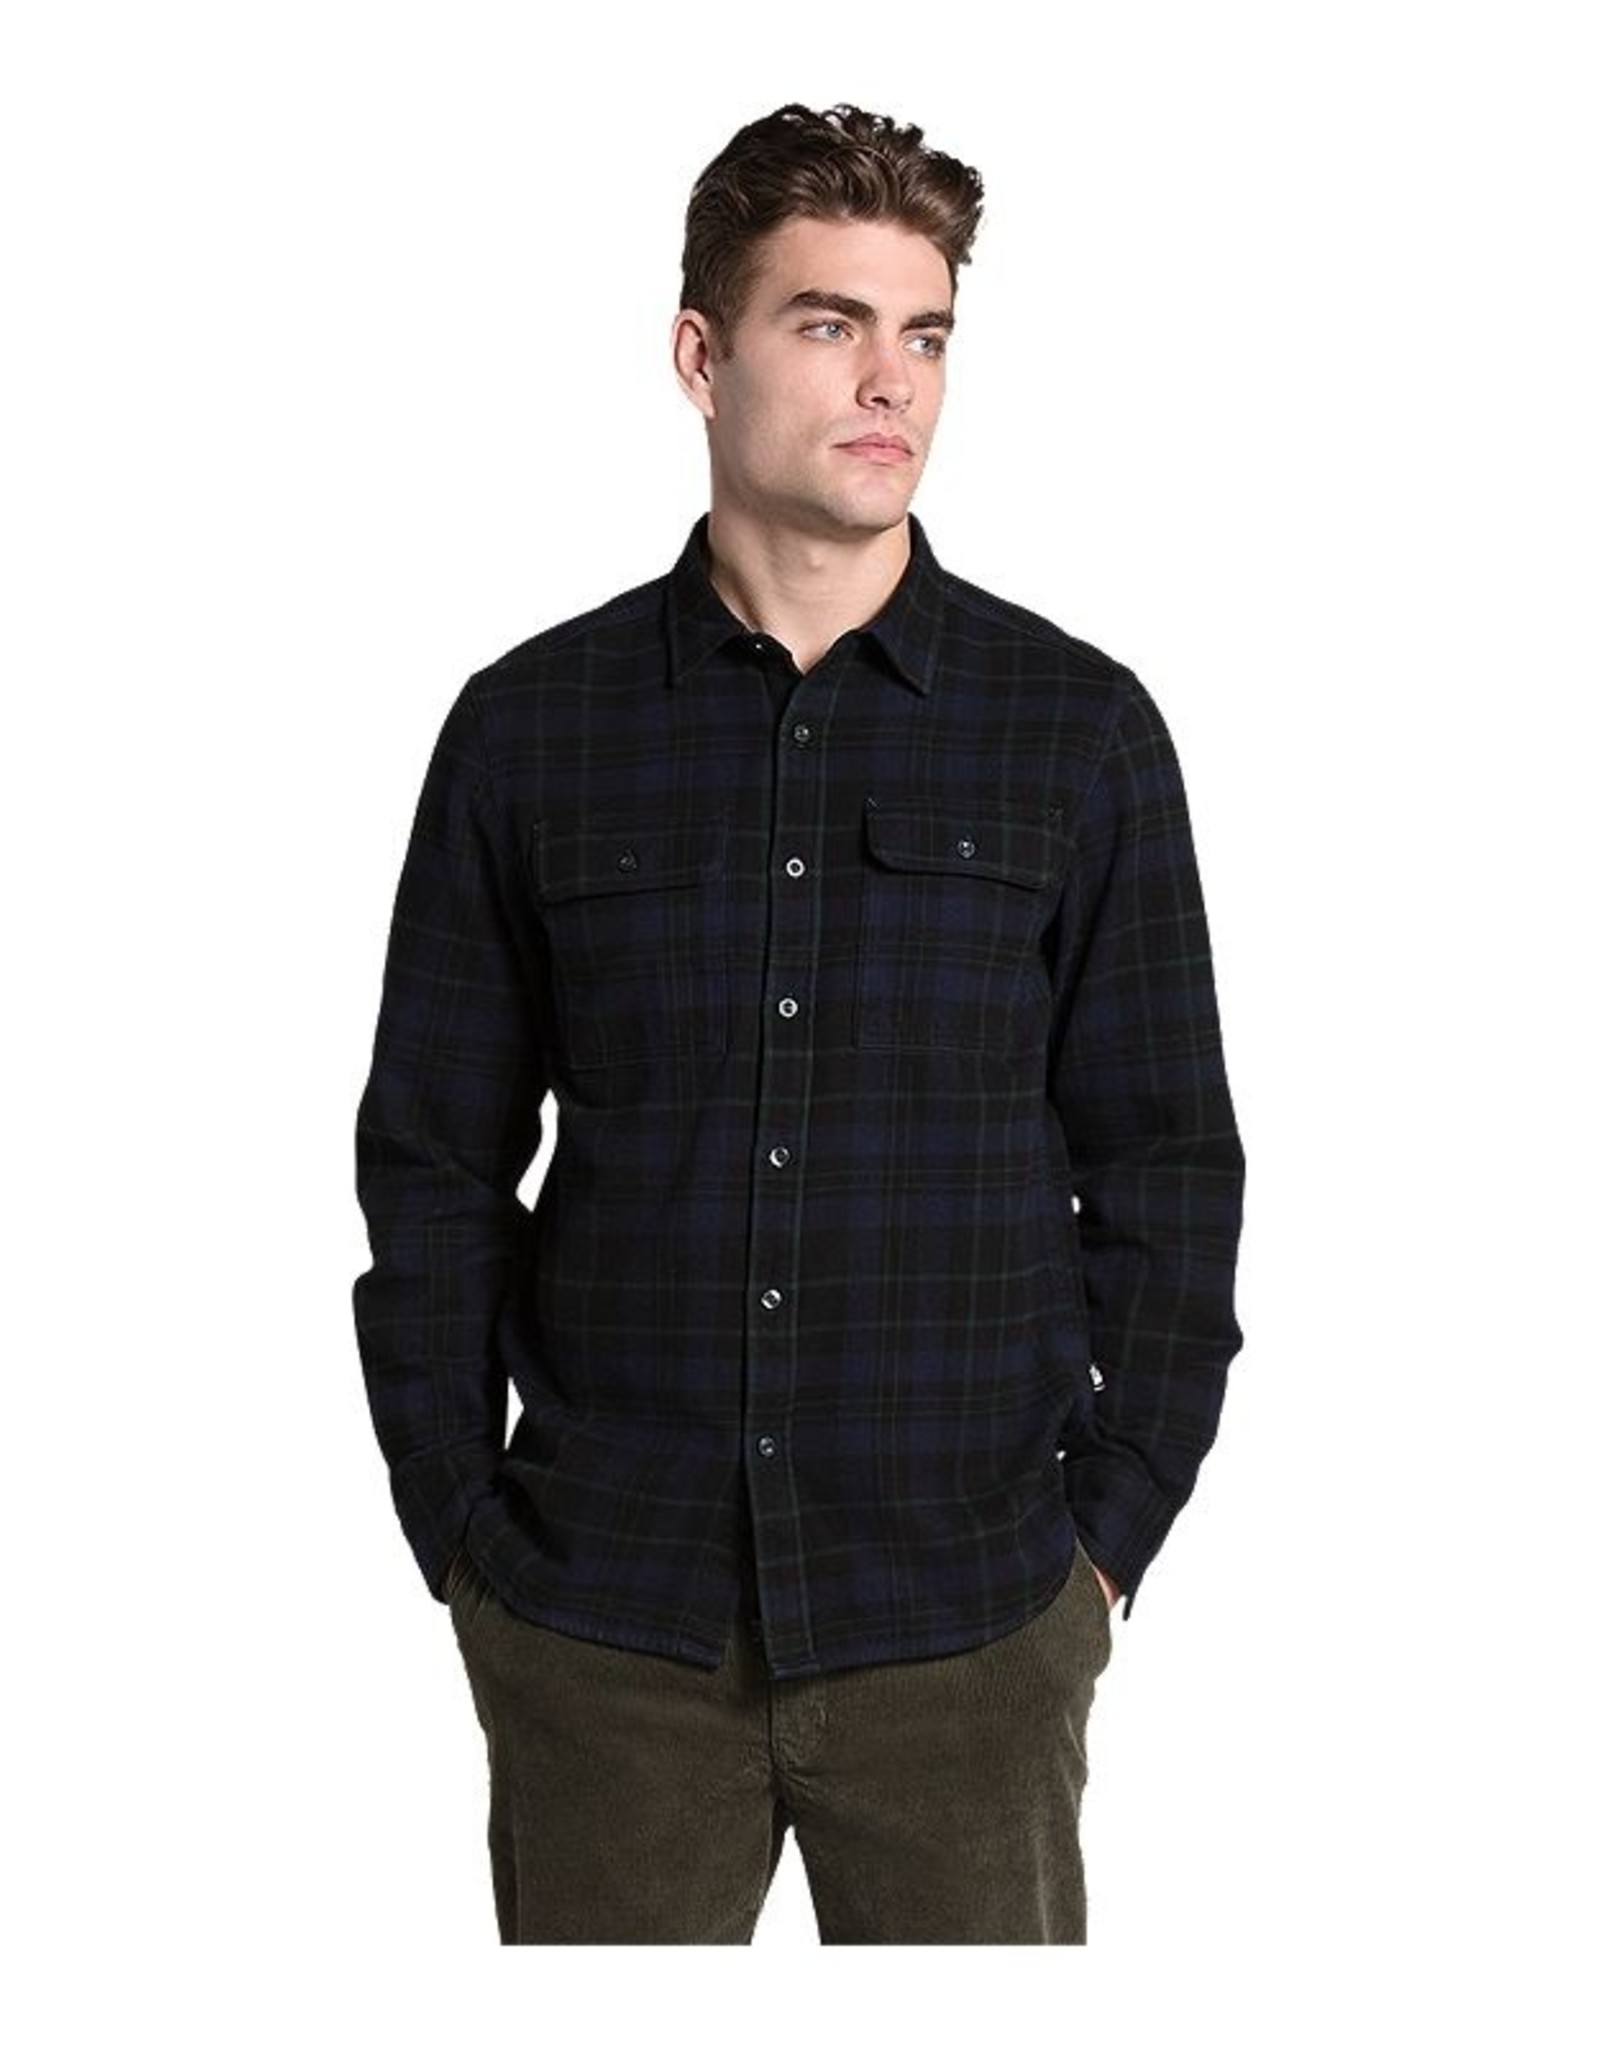 The North Face The North Face Men's Arroyo Flannel Shirt -W2020